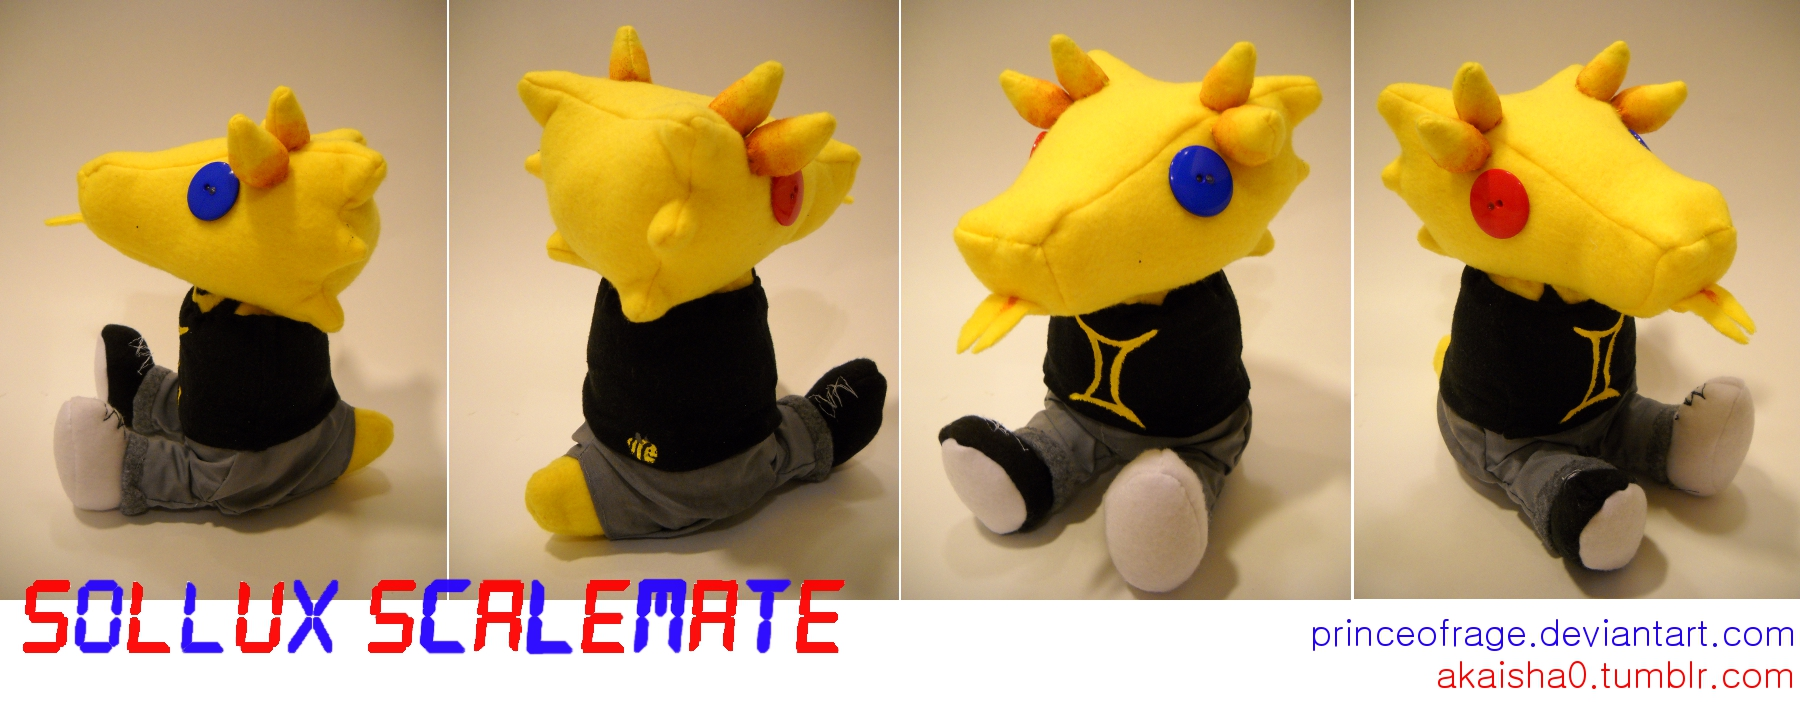 Sollux Scalemate by PrinceOfRage